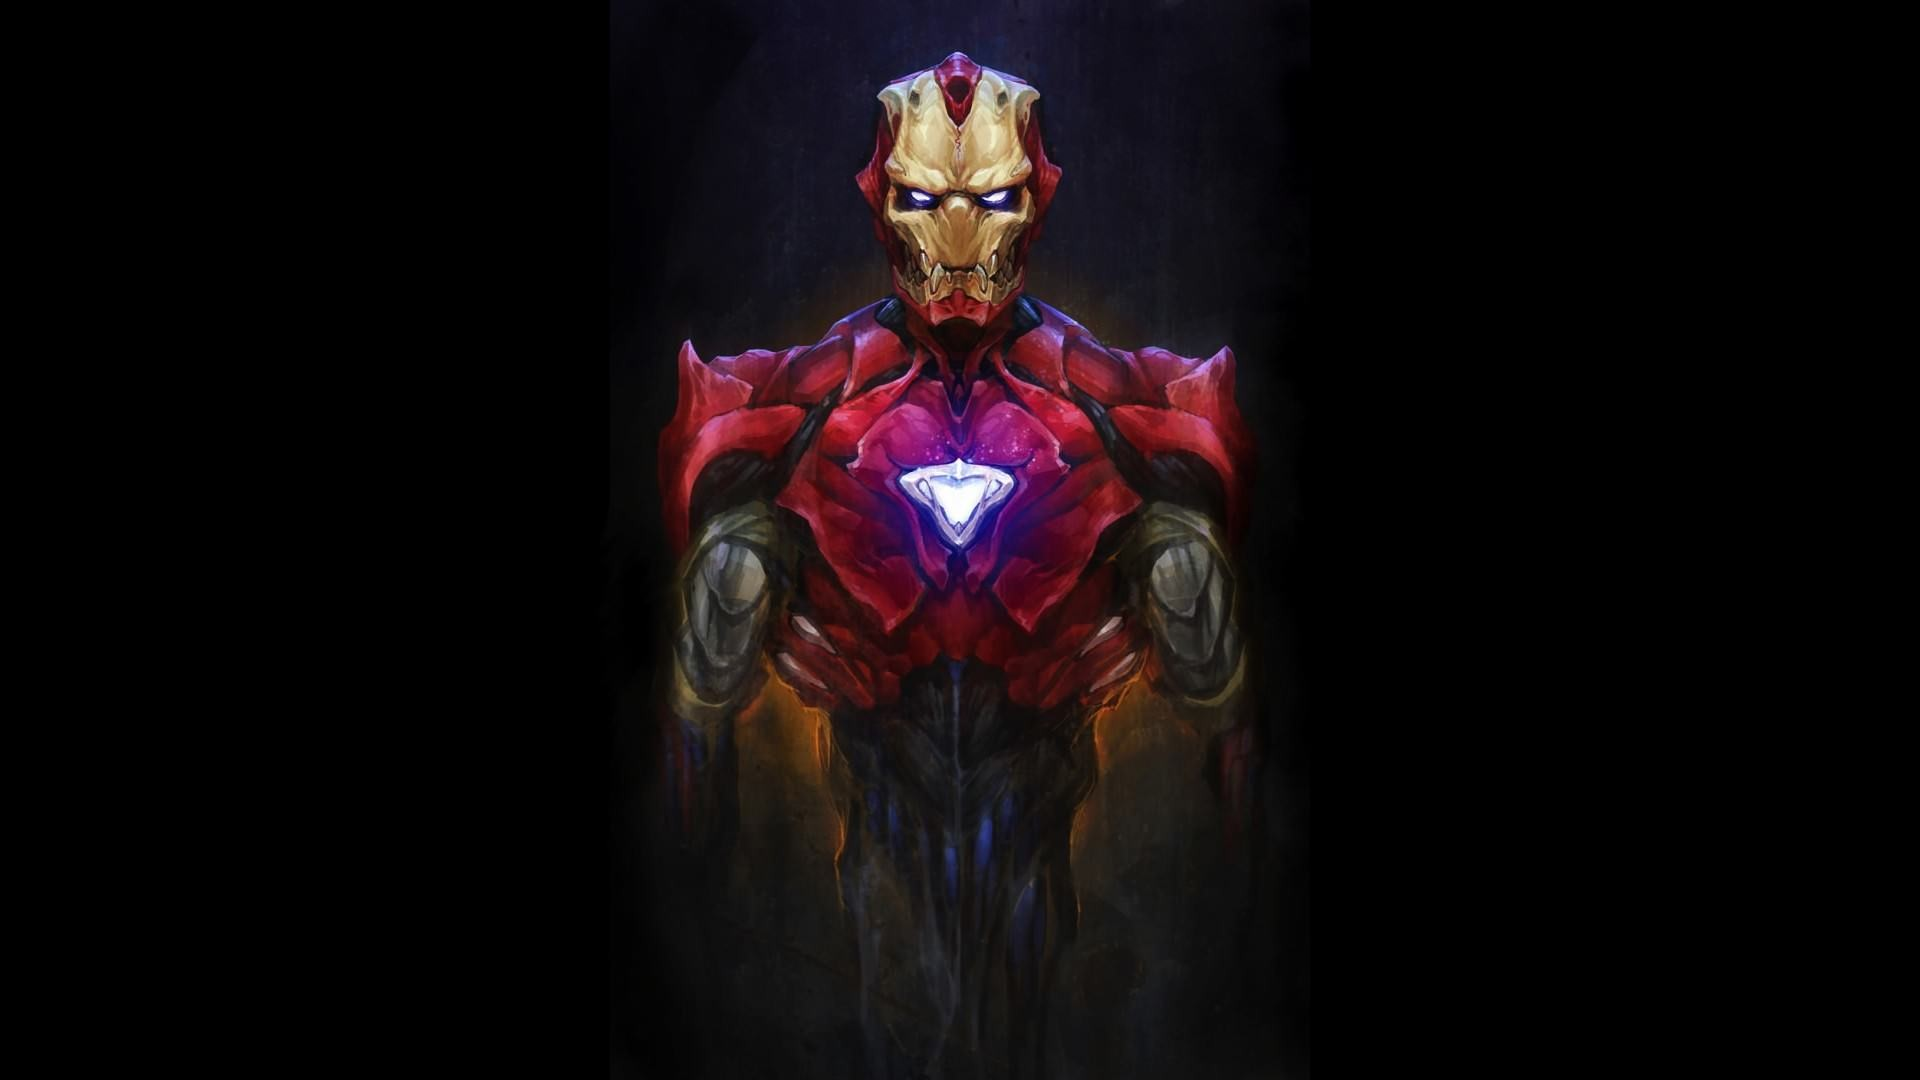 Great Wallpaper Mac Iron Man - 818678-iron-man-suit-wallpapers-1920x1080-for-mac  Gallery_371956.jpg